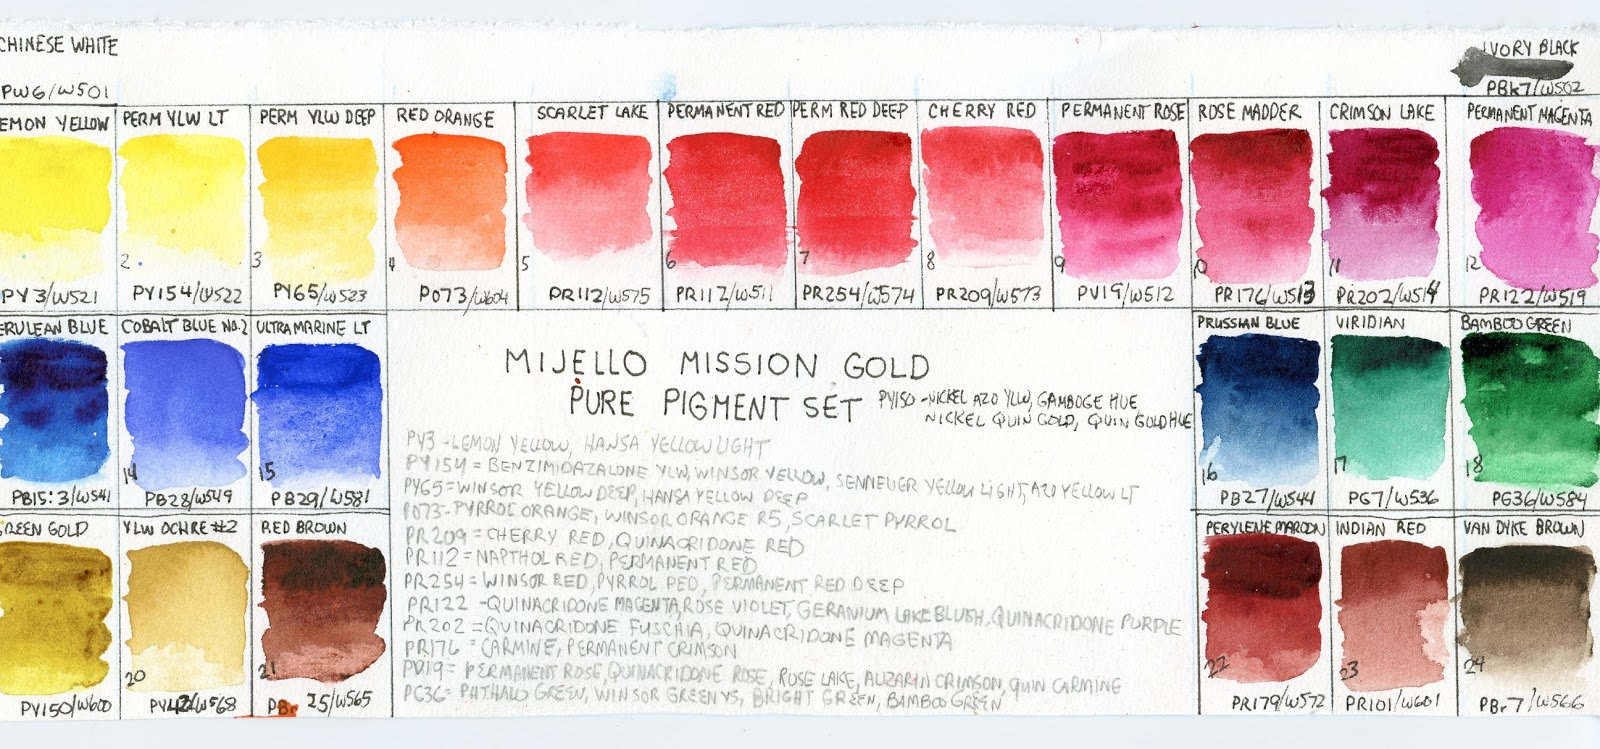 Review Mission Gold Pure Pigment Watercolor Set Mijello